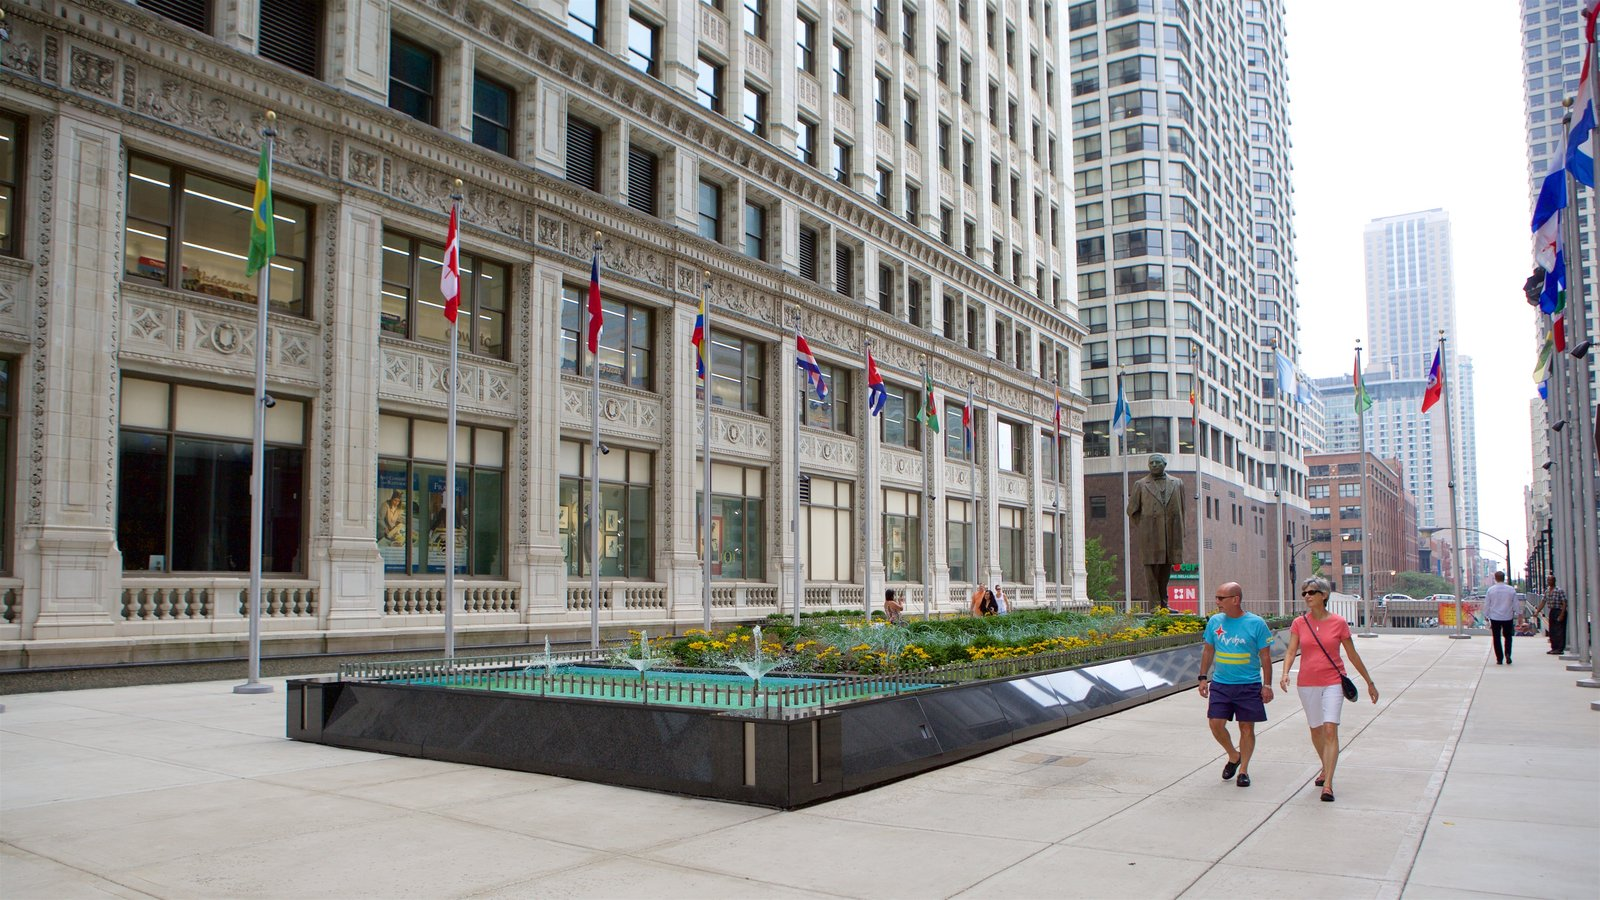 Magnificent Mile - River North showing a square or plaza